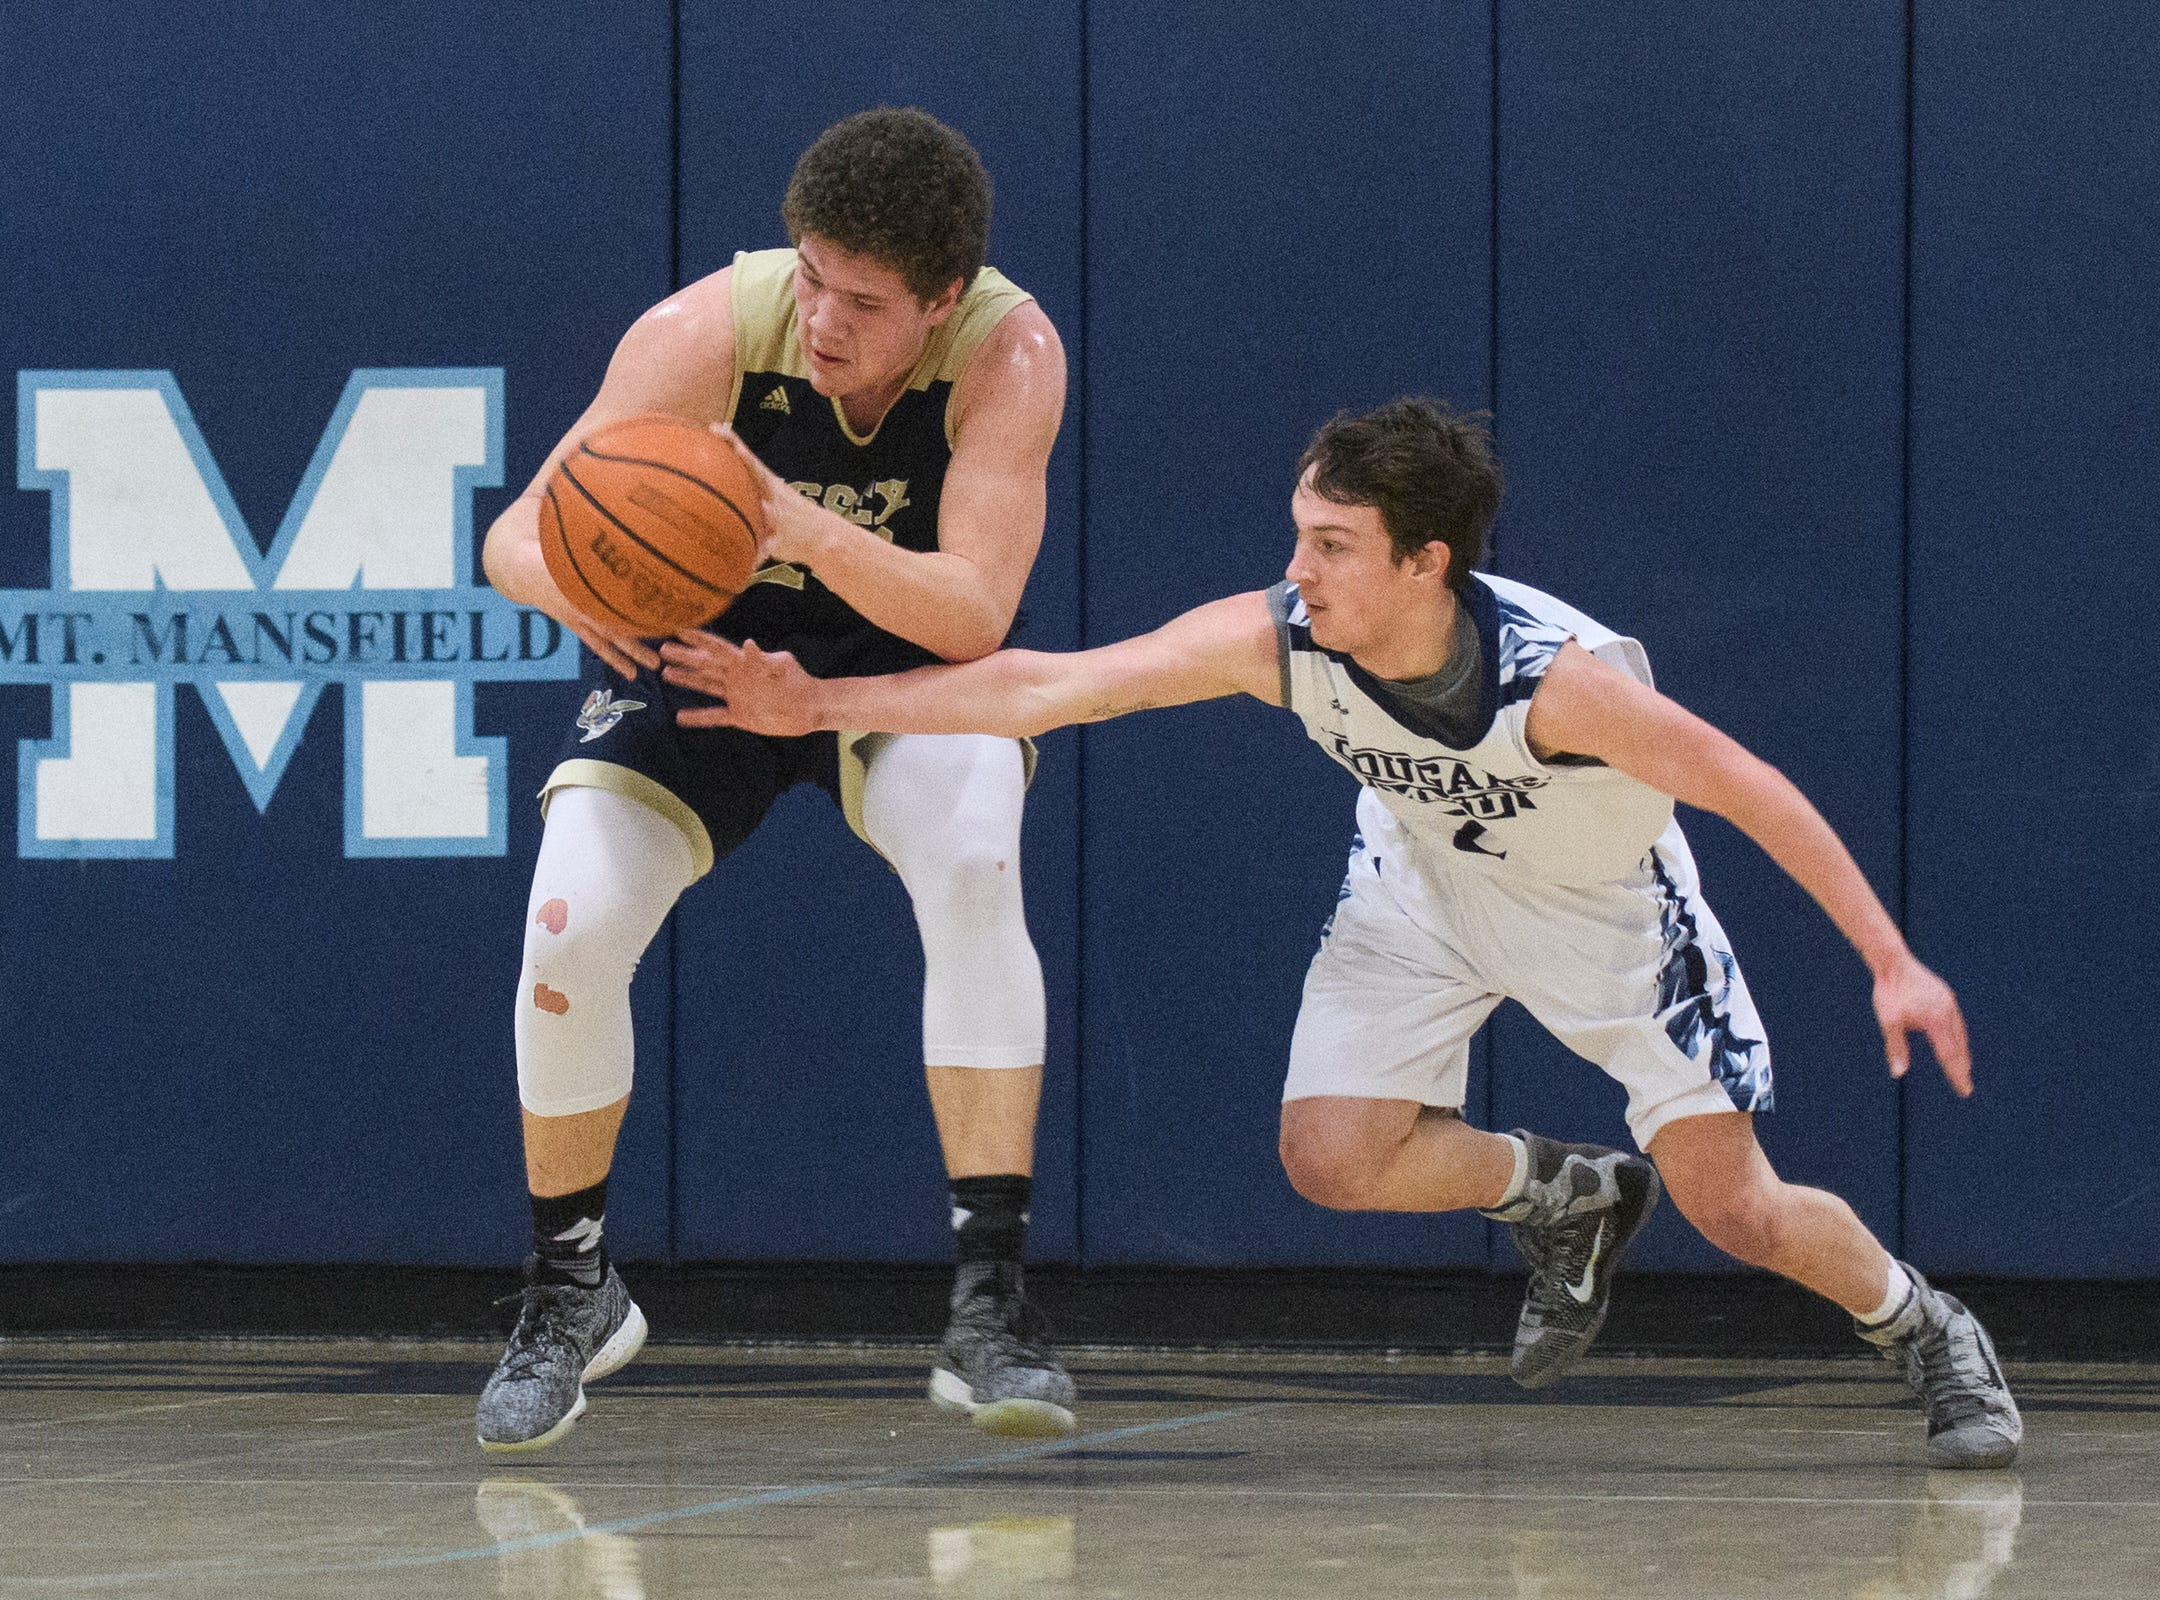 MMU's Riley Smith (2) strips the ball from Essex's Anthony Decarvalho (23) during the boys basketball game between the Essex Hornets and the Mount Mansfield Cougars at MMU High School on Wednesday night February 13, 2019 in Jericho, Vermont.